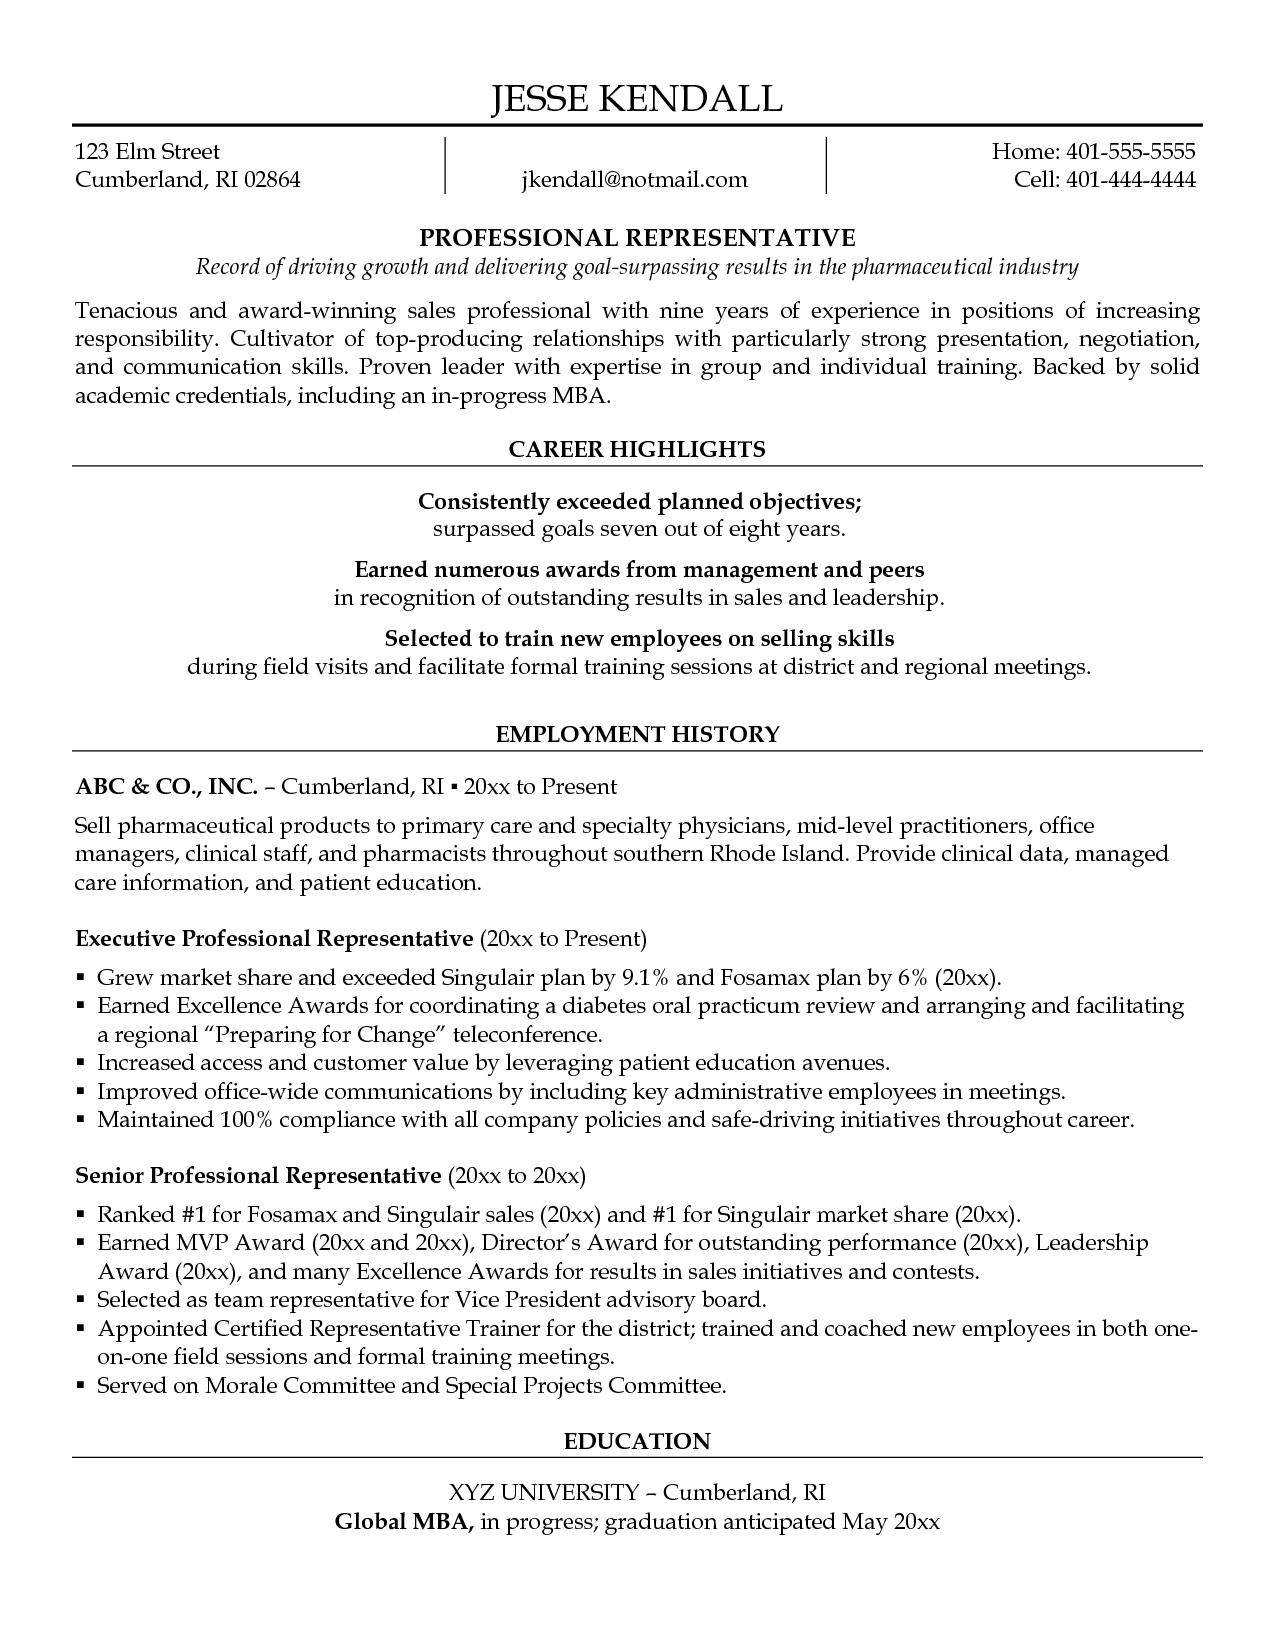 Bookkeeper Resume Cover Letter Ideas  HttpWwwJobresume